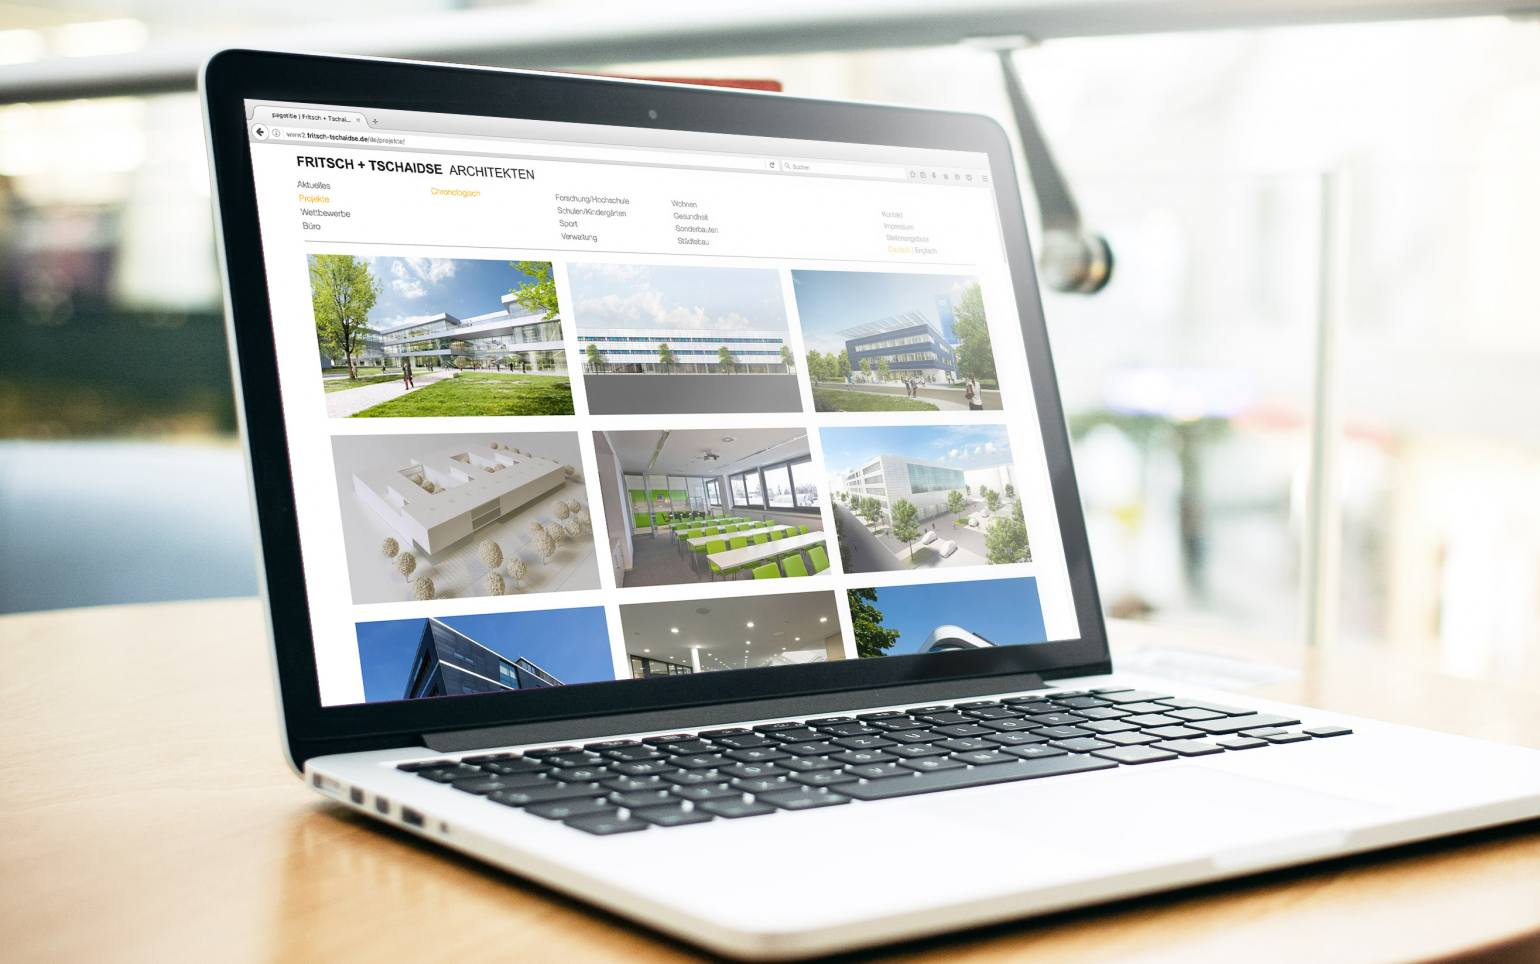 fritsch_tschaidse_architekten_neue_website_768